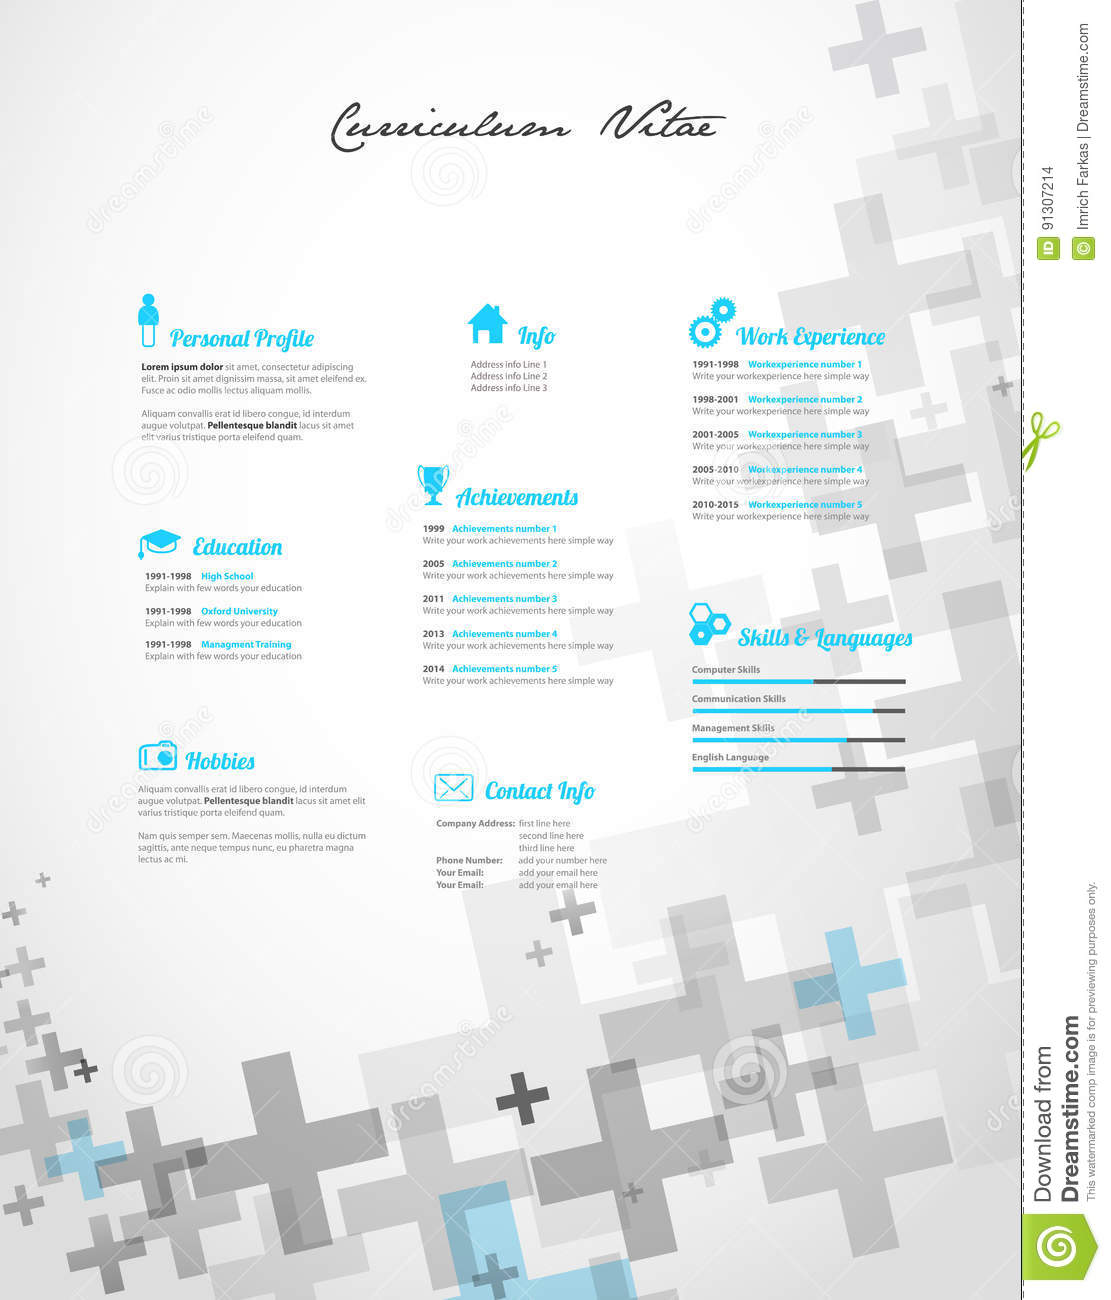 Tolle Grafikdesignerzusammenfassung Bilder - Entry Level Resume ...